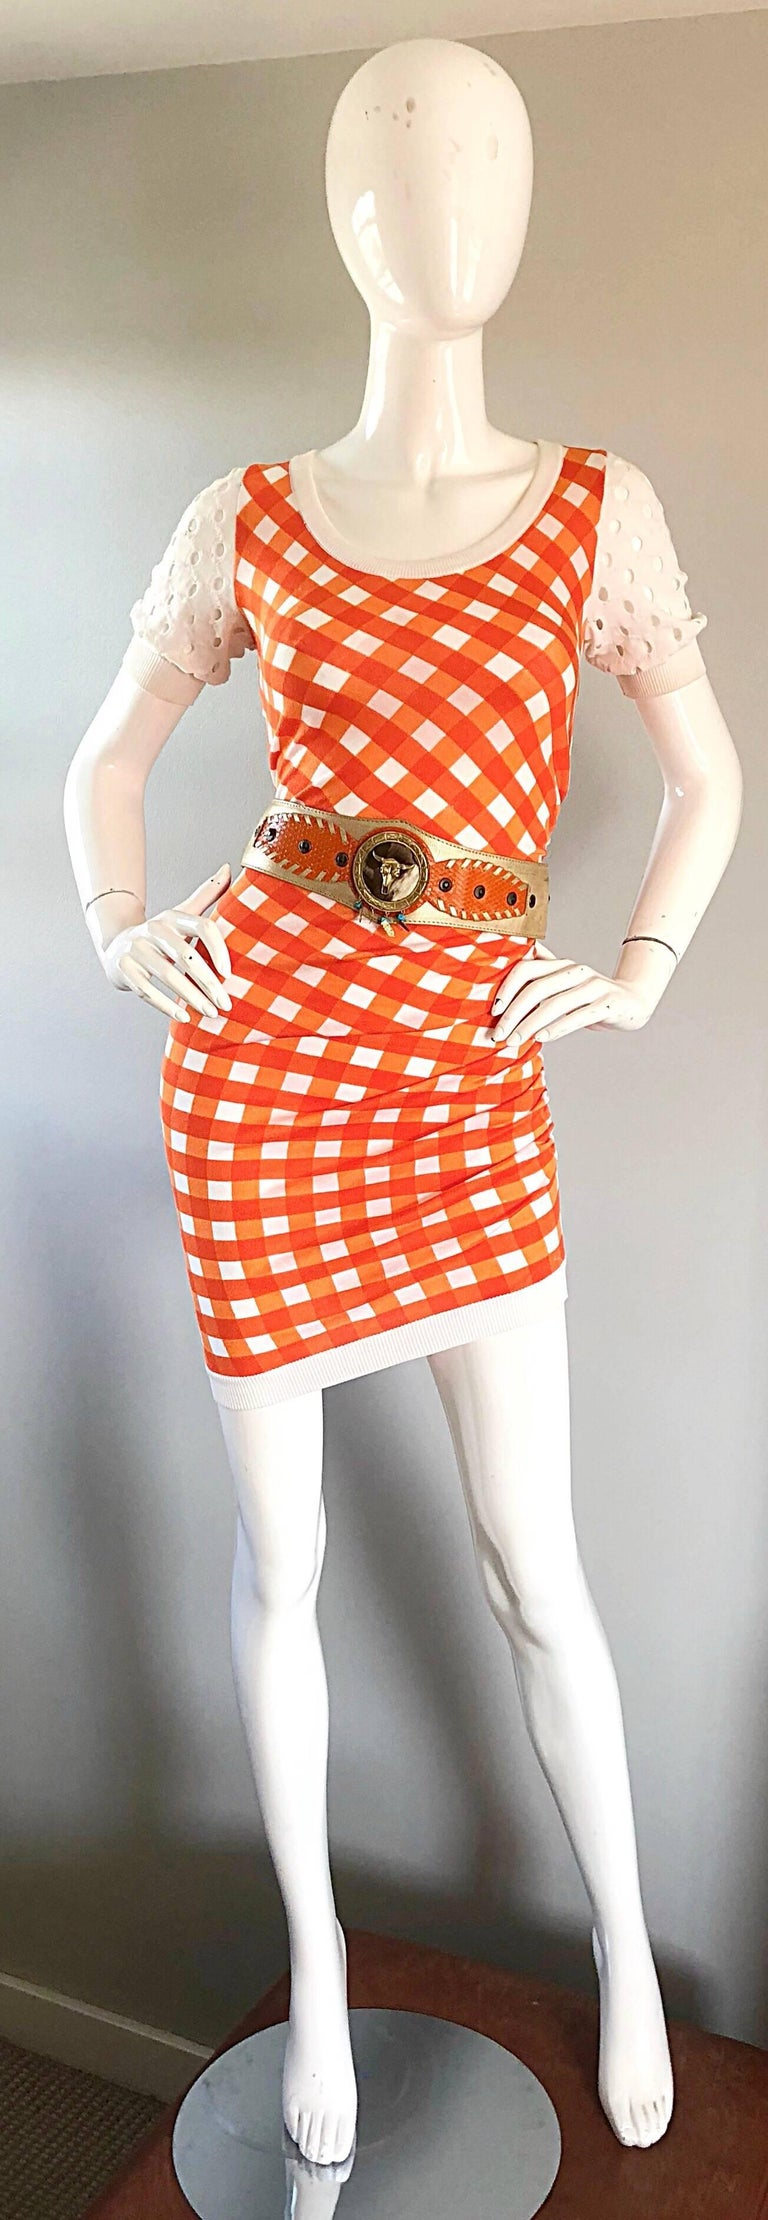 Vintage Moschino Cheap & Chic 1990s Orange + White Gingham Bodycon 90s Dress In Excellent Condition For Sale In Chicago, IL